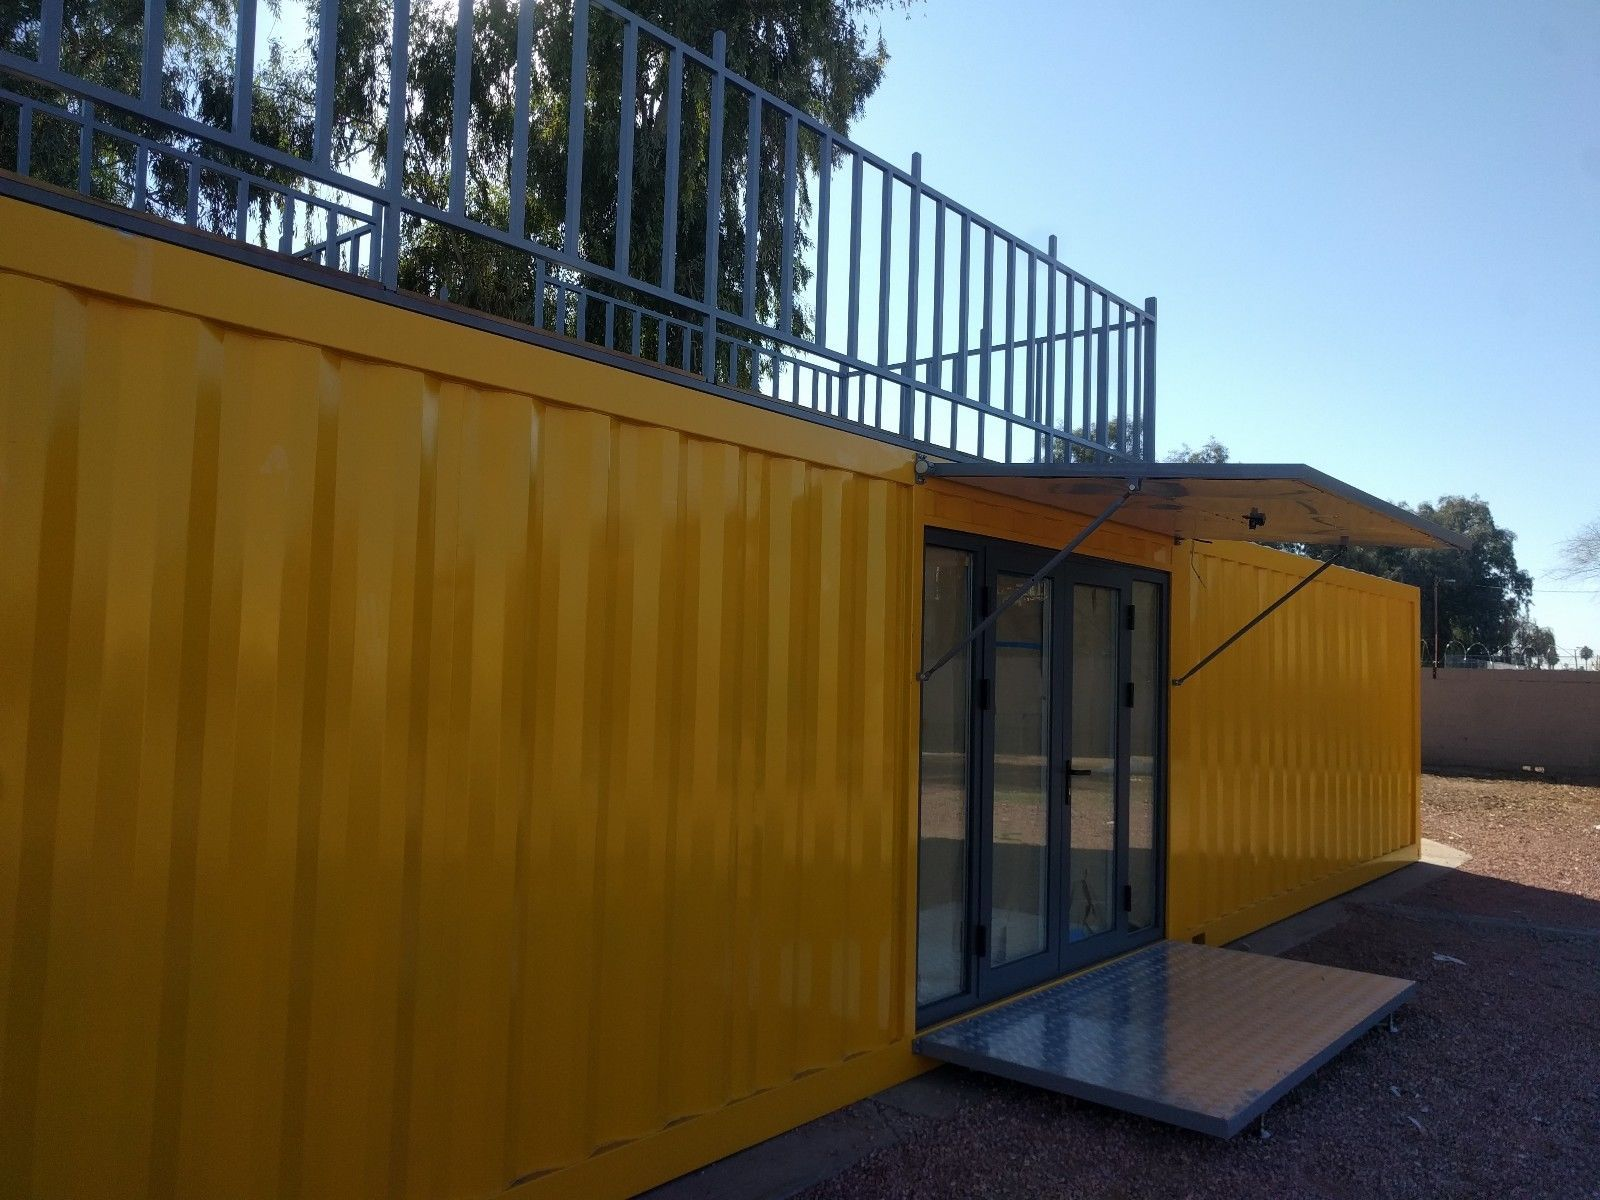 40 Shipping Containers For Sale Ebay >> 25 0000 40 Custom Built Shipping Container Home In Phoenix